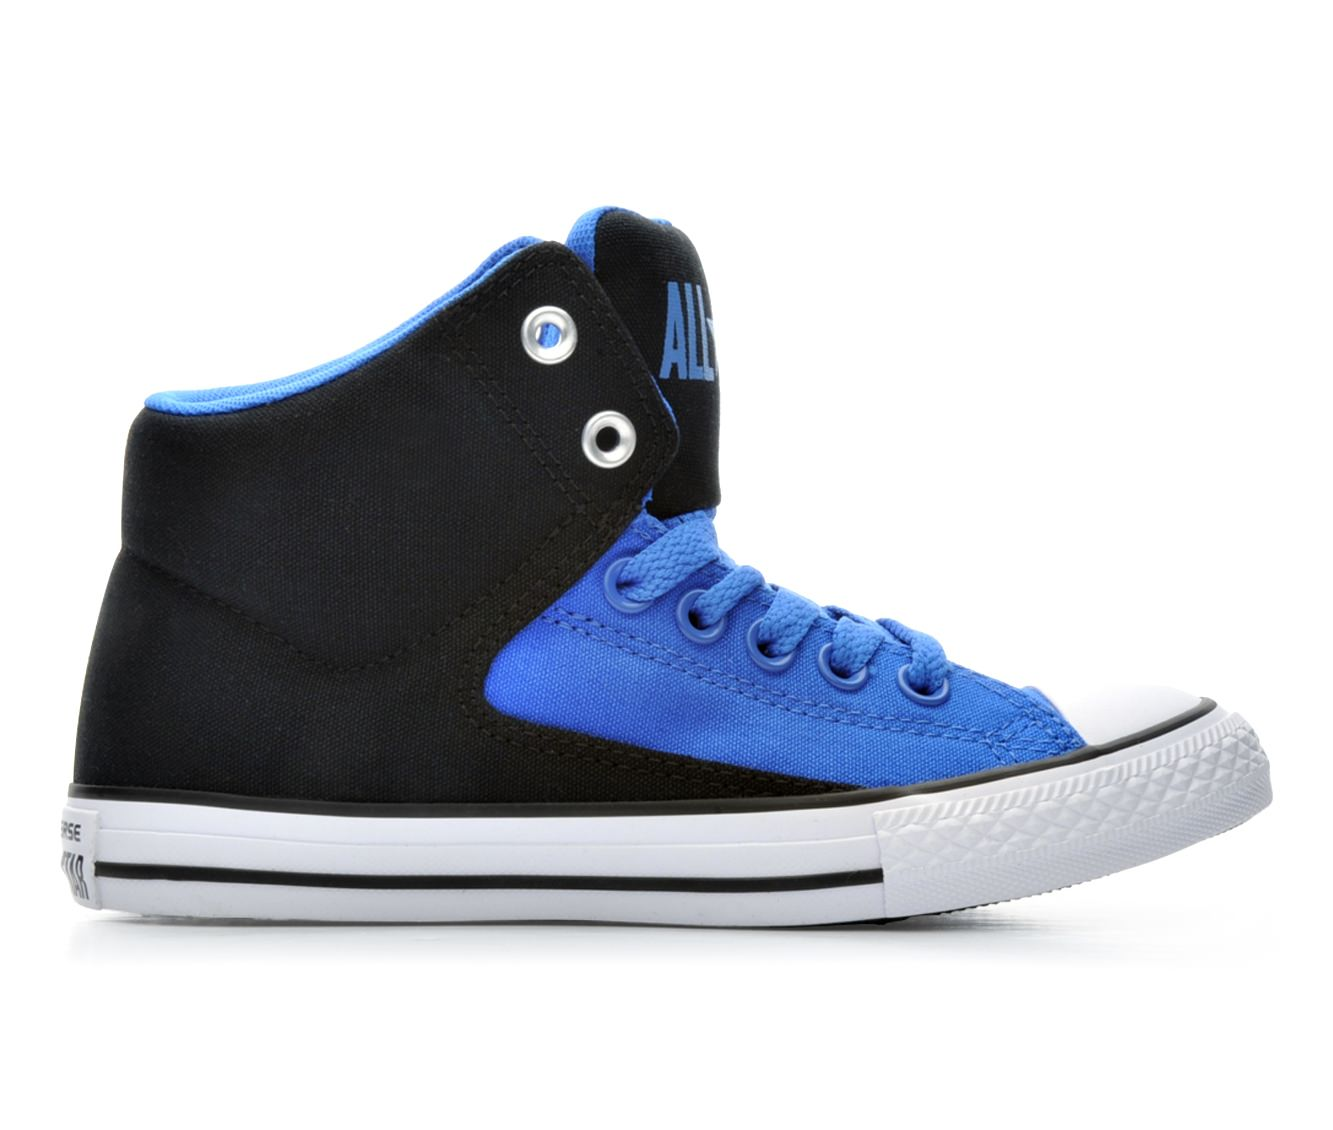 Boys' Converse Chuck Taylor All Star High Street Hi Sneakers (Blue)